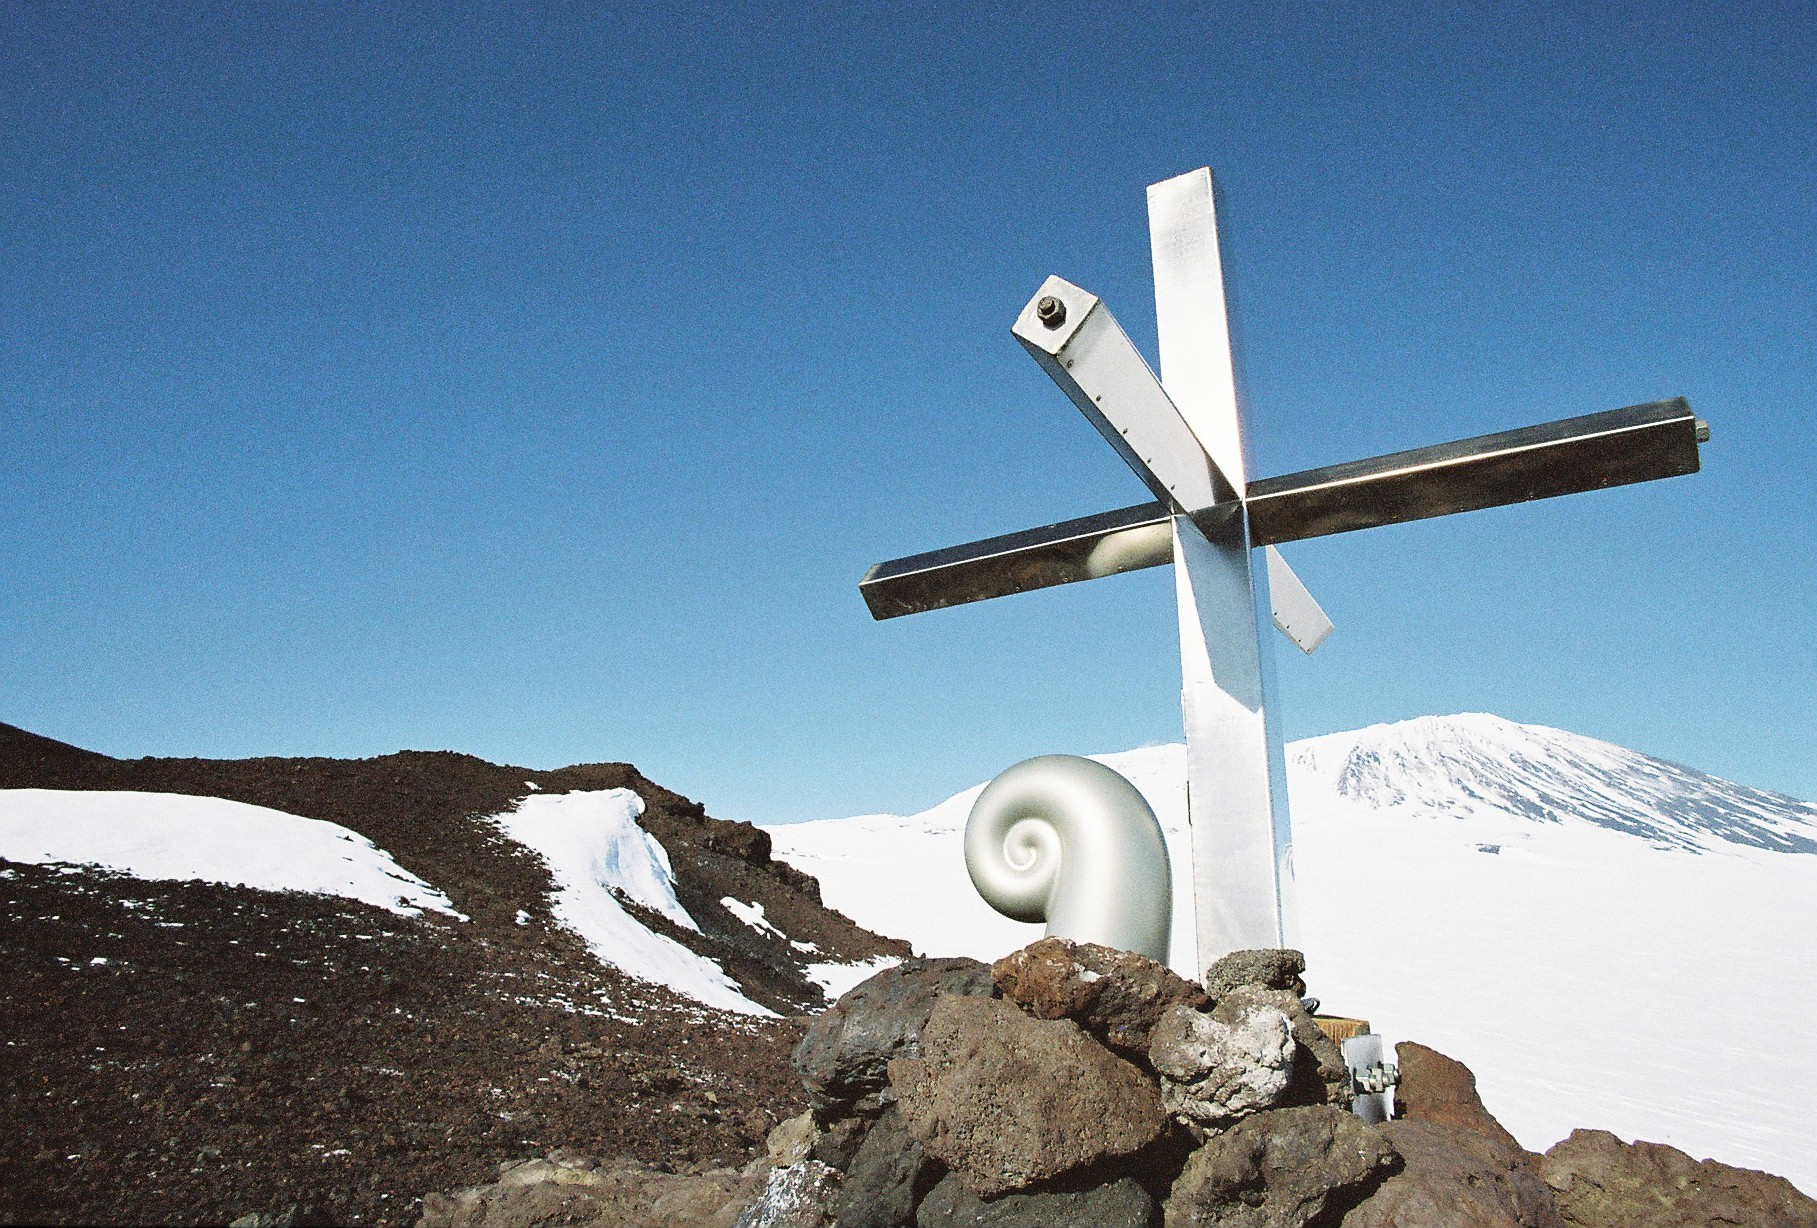 Koru capsule and cross on Mt Erebus. The cross is located approximately 3 km south-east of the 1979 crash site. This stainless steel cross was erected in 1987 to replace the original wooden one, which had eroded. The Koru was created by Christchurch sculptor, Phil Price. Photo credit: Daniel O'Sullivan, 2009-10, Antarctica New Zealand Pictorial Collection.